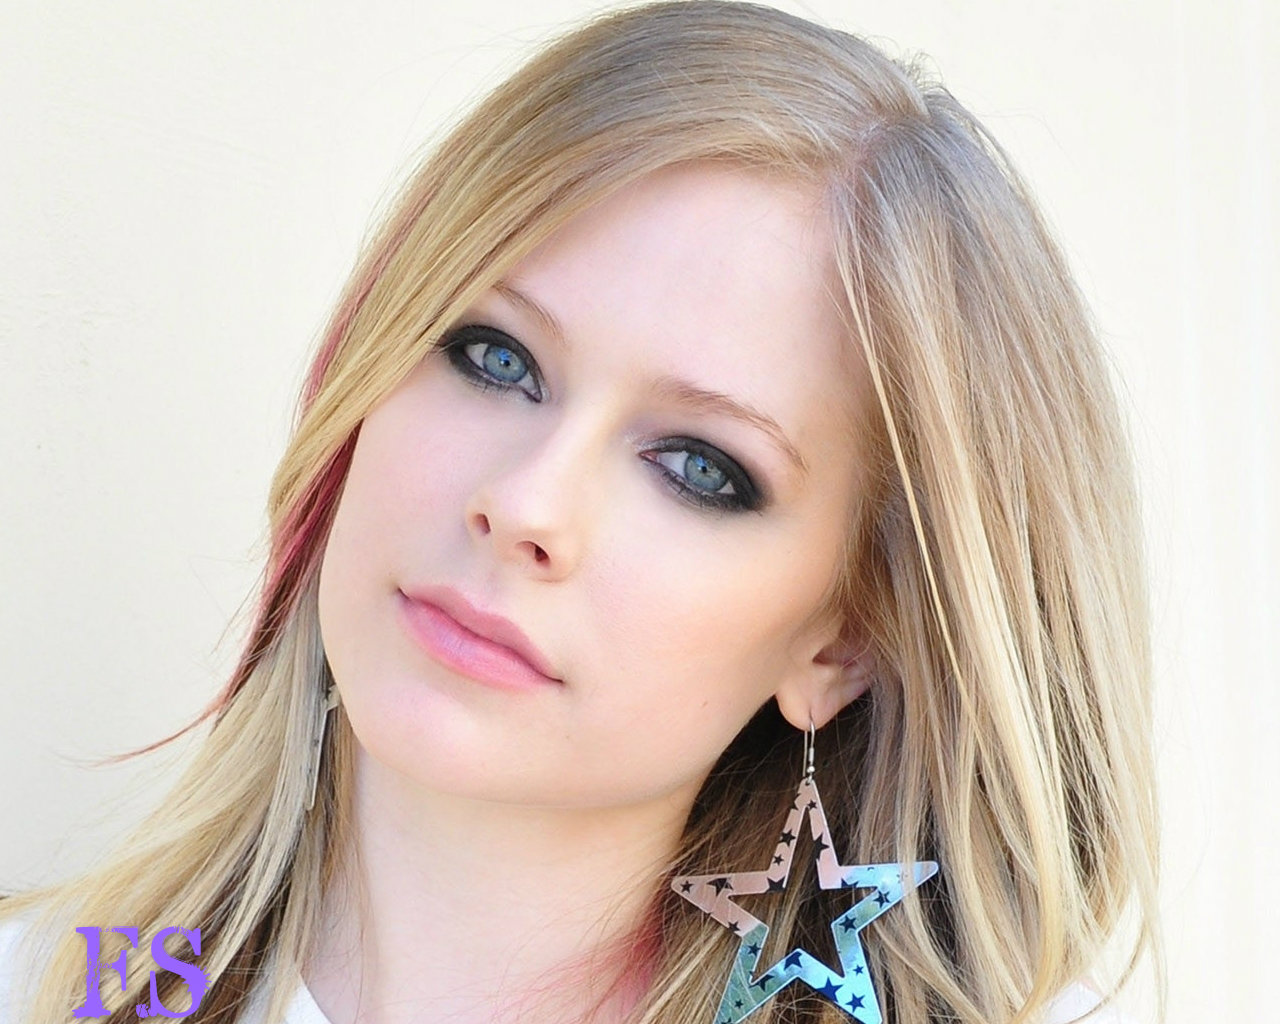 Avril Lavigne with makeup